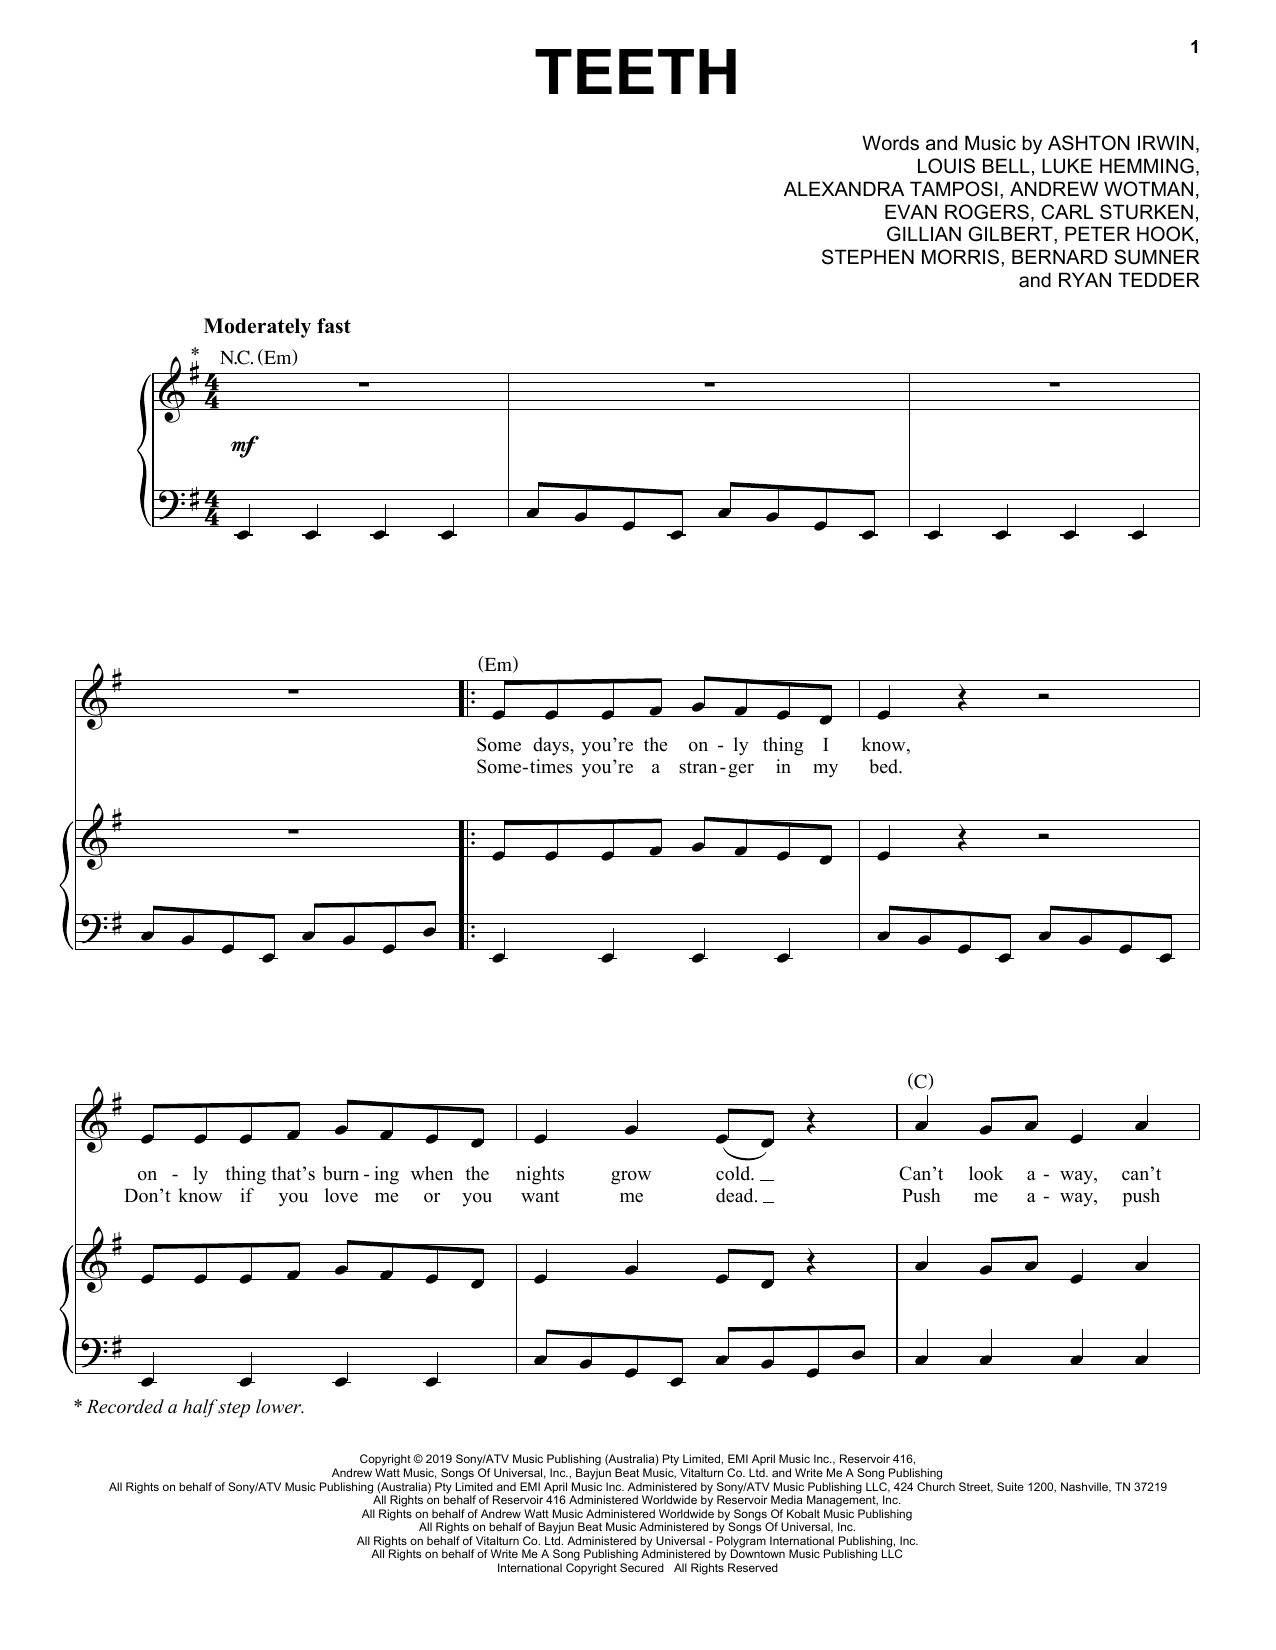 Download 5 Seconds of Summer 'Teeth' Digital Sheet Music Notes & Chords and start playing in minutes